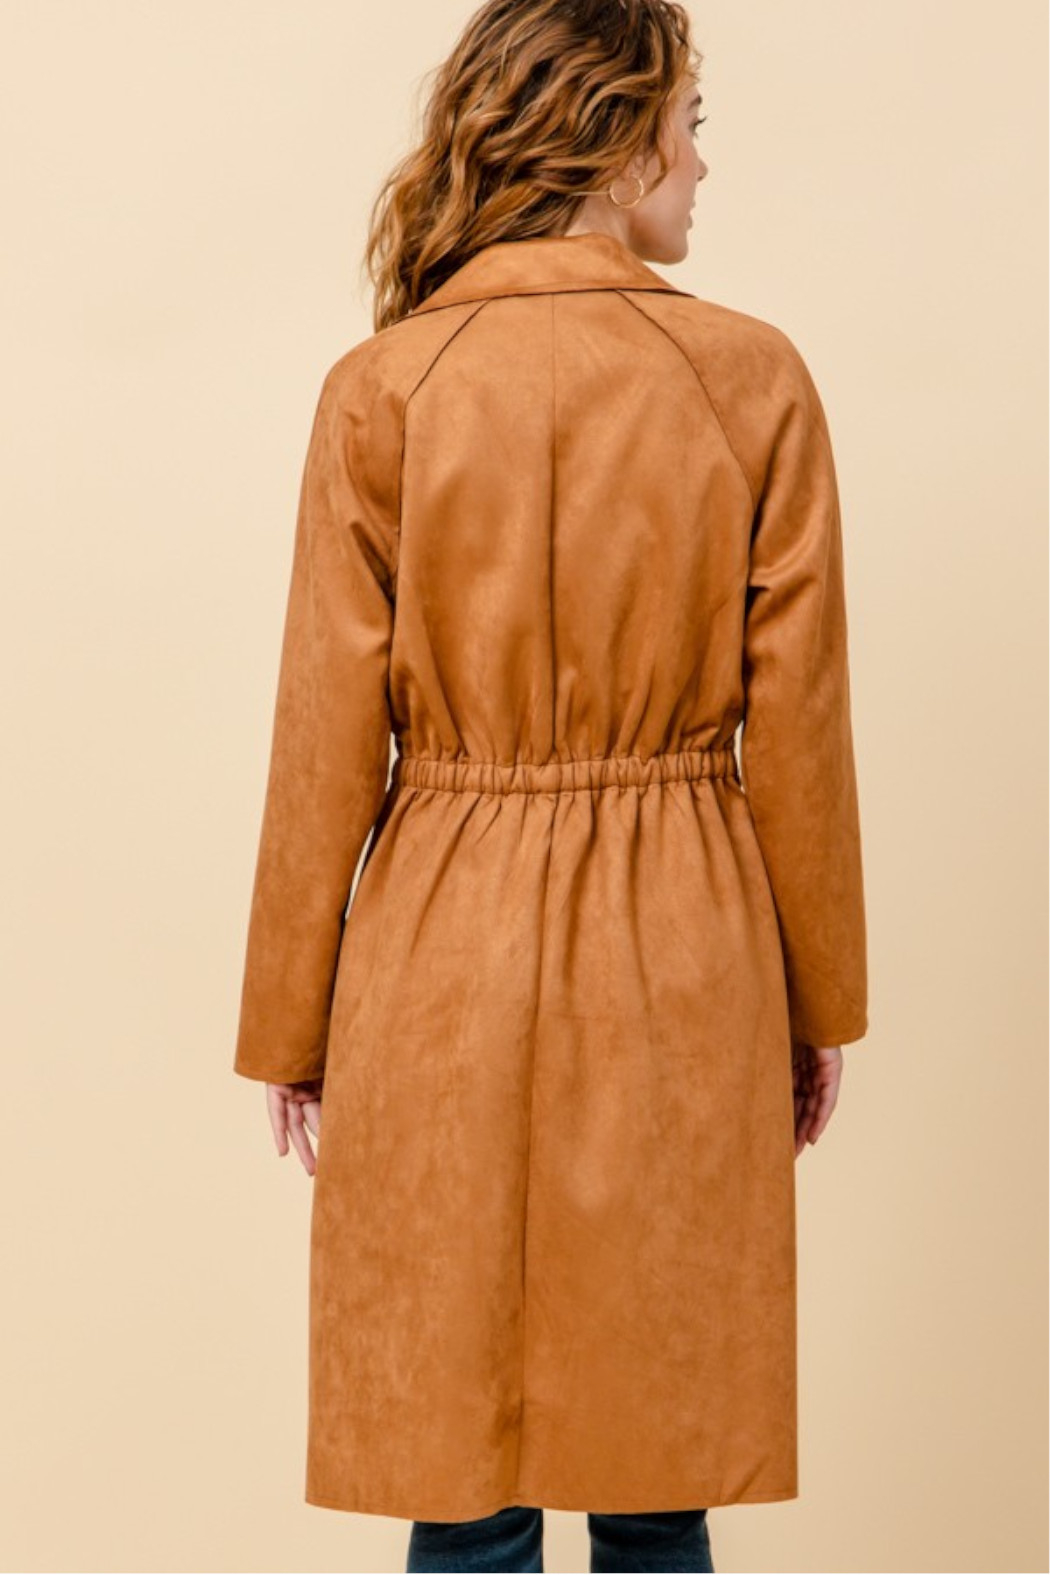 HYFVE Camel Suede Trench Coat - Side Cropped Image